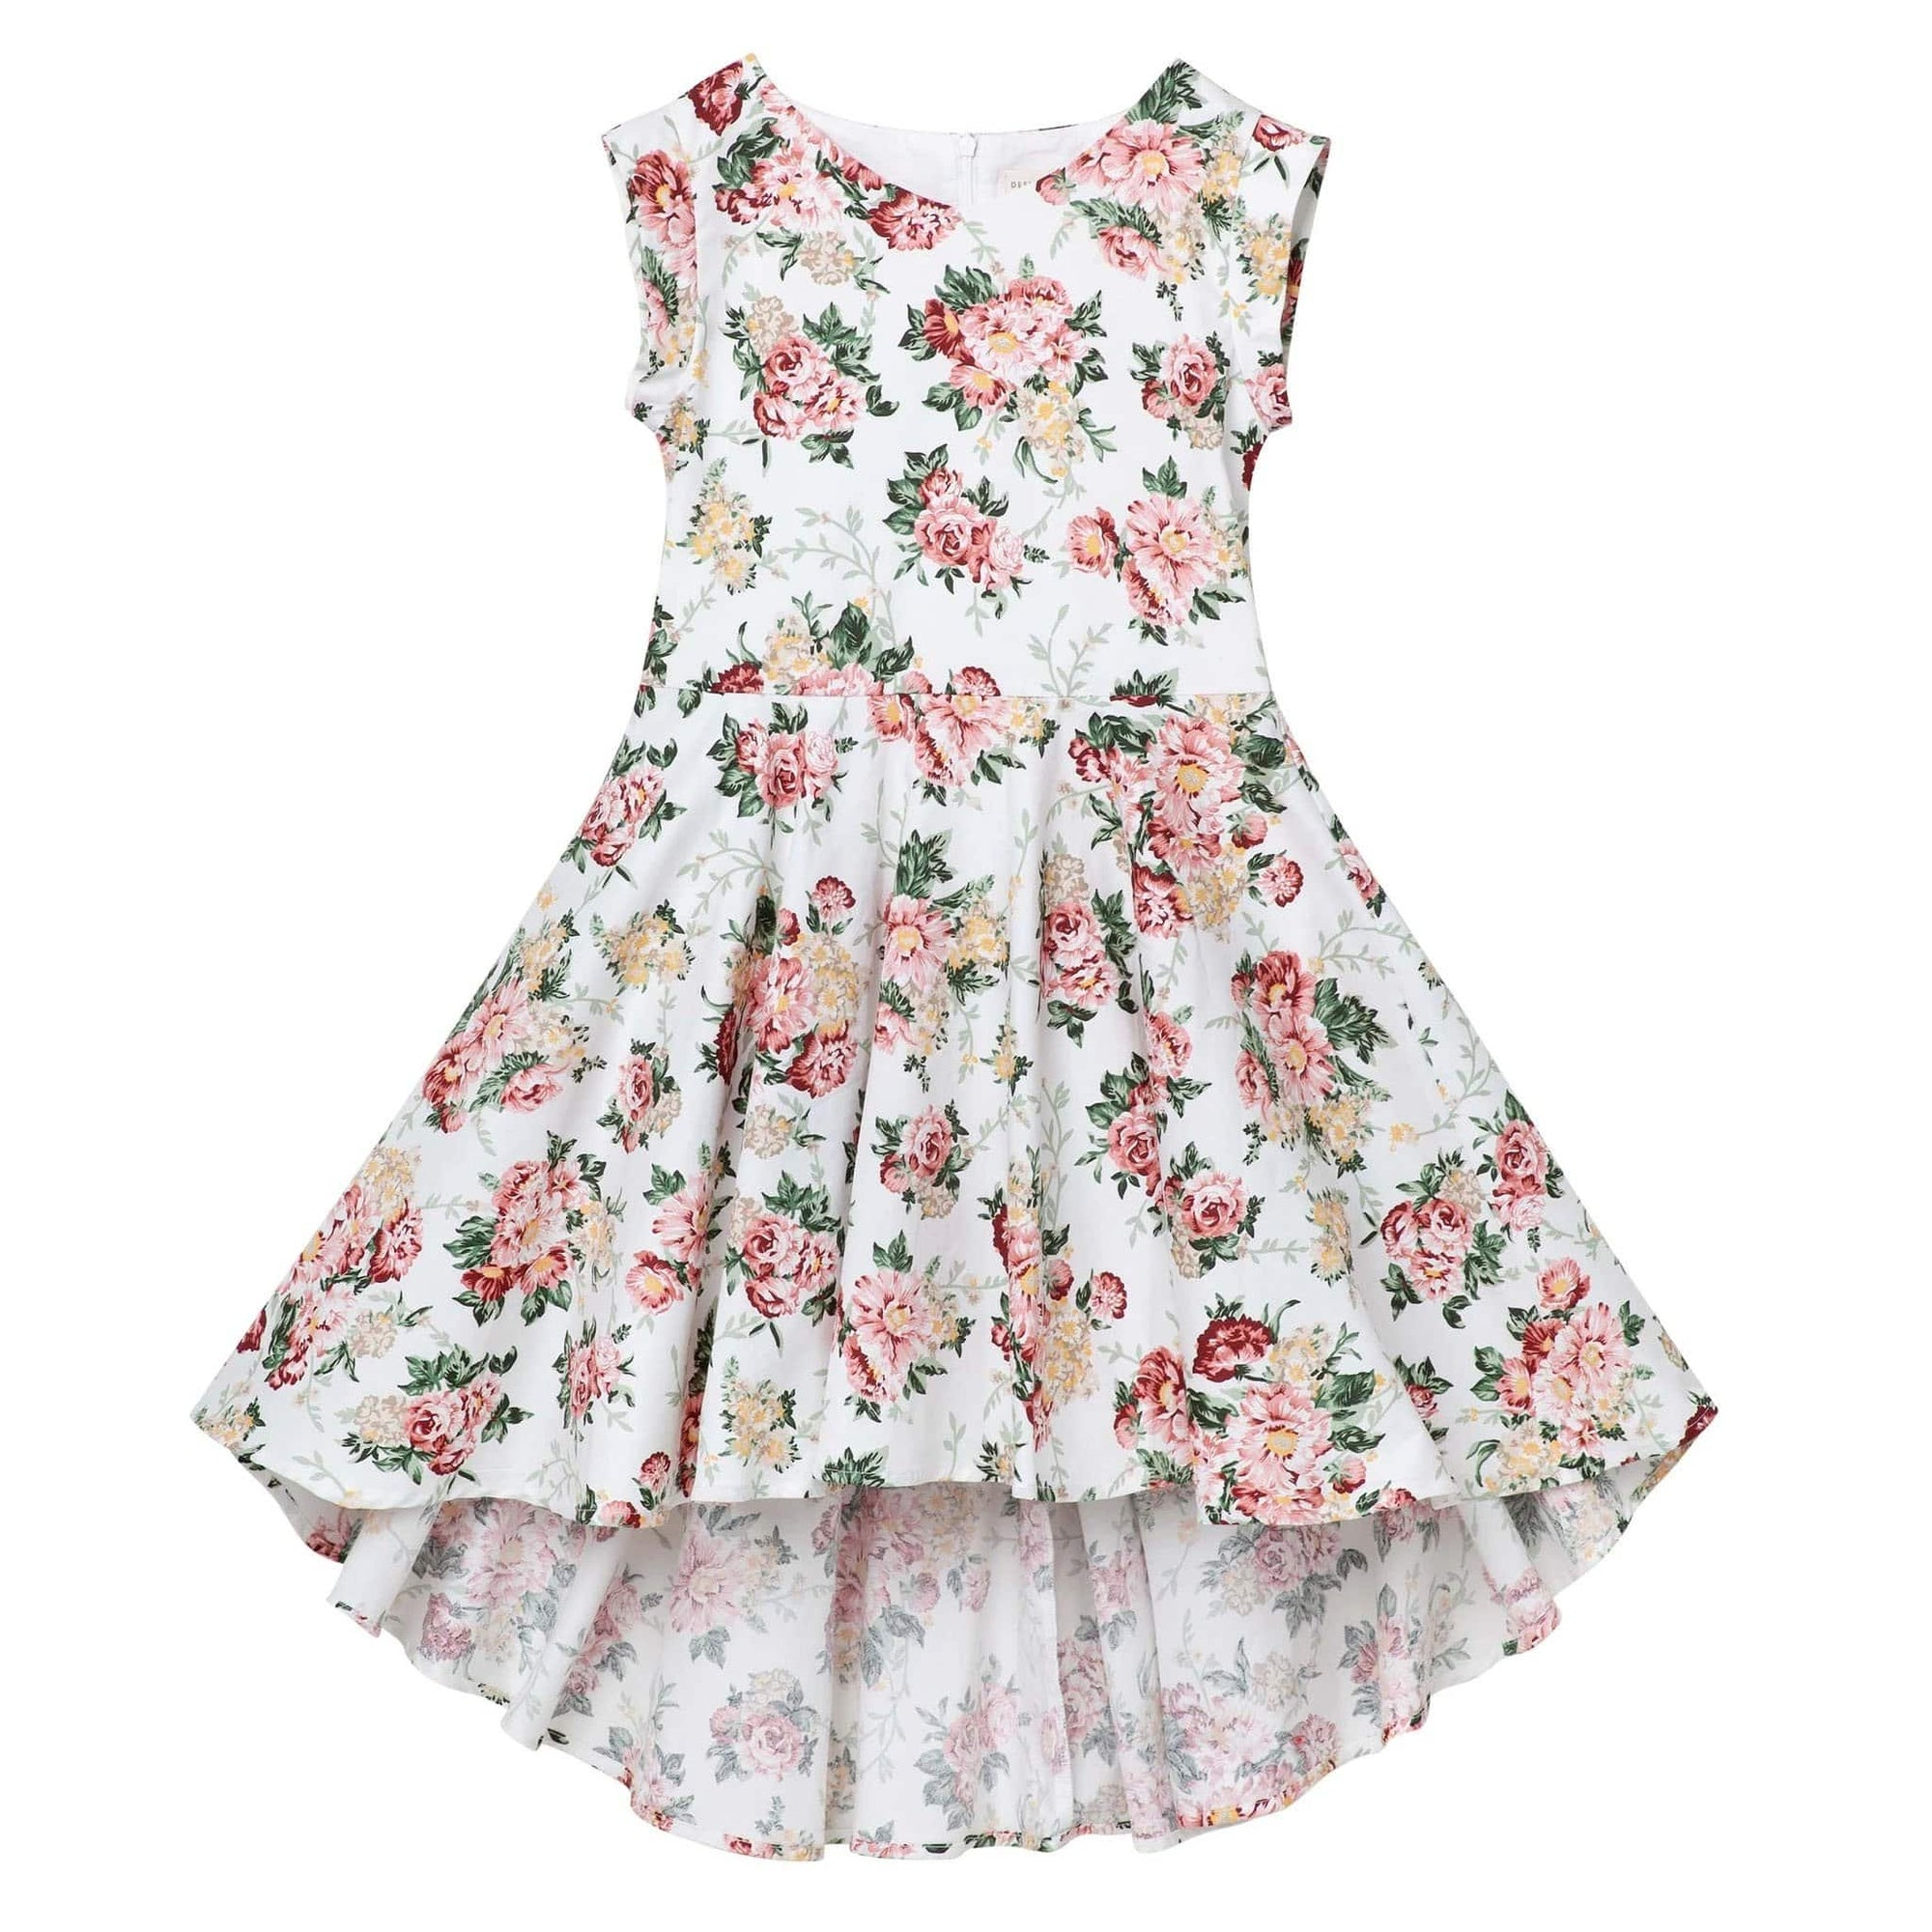 Designer Kidz Belle Floral Dress